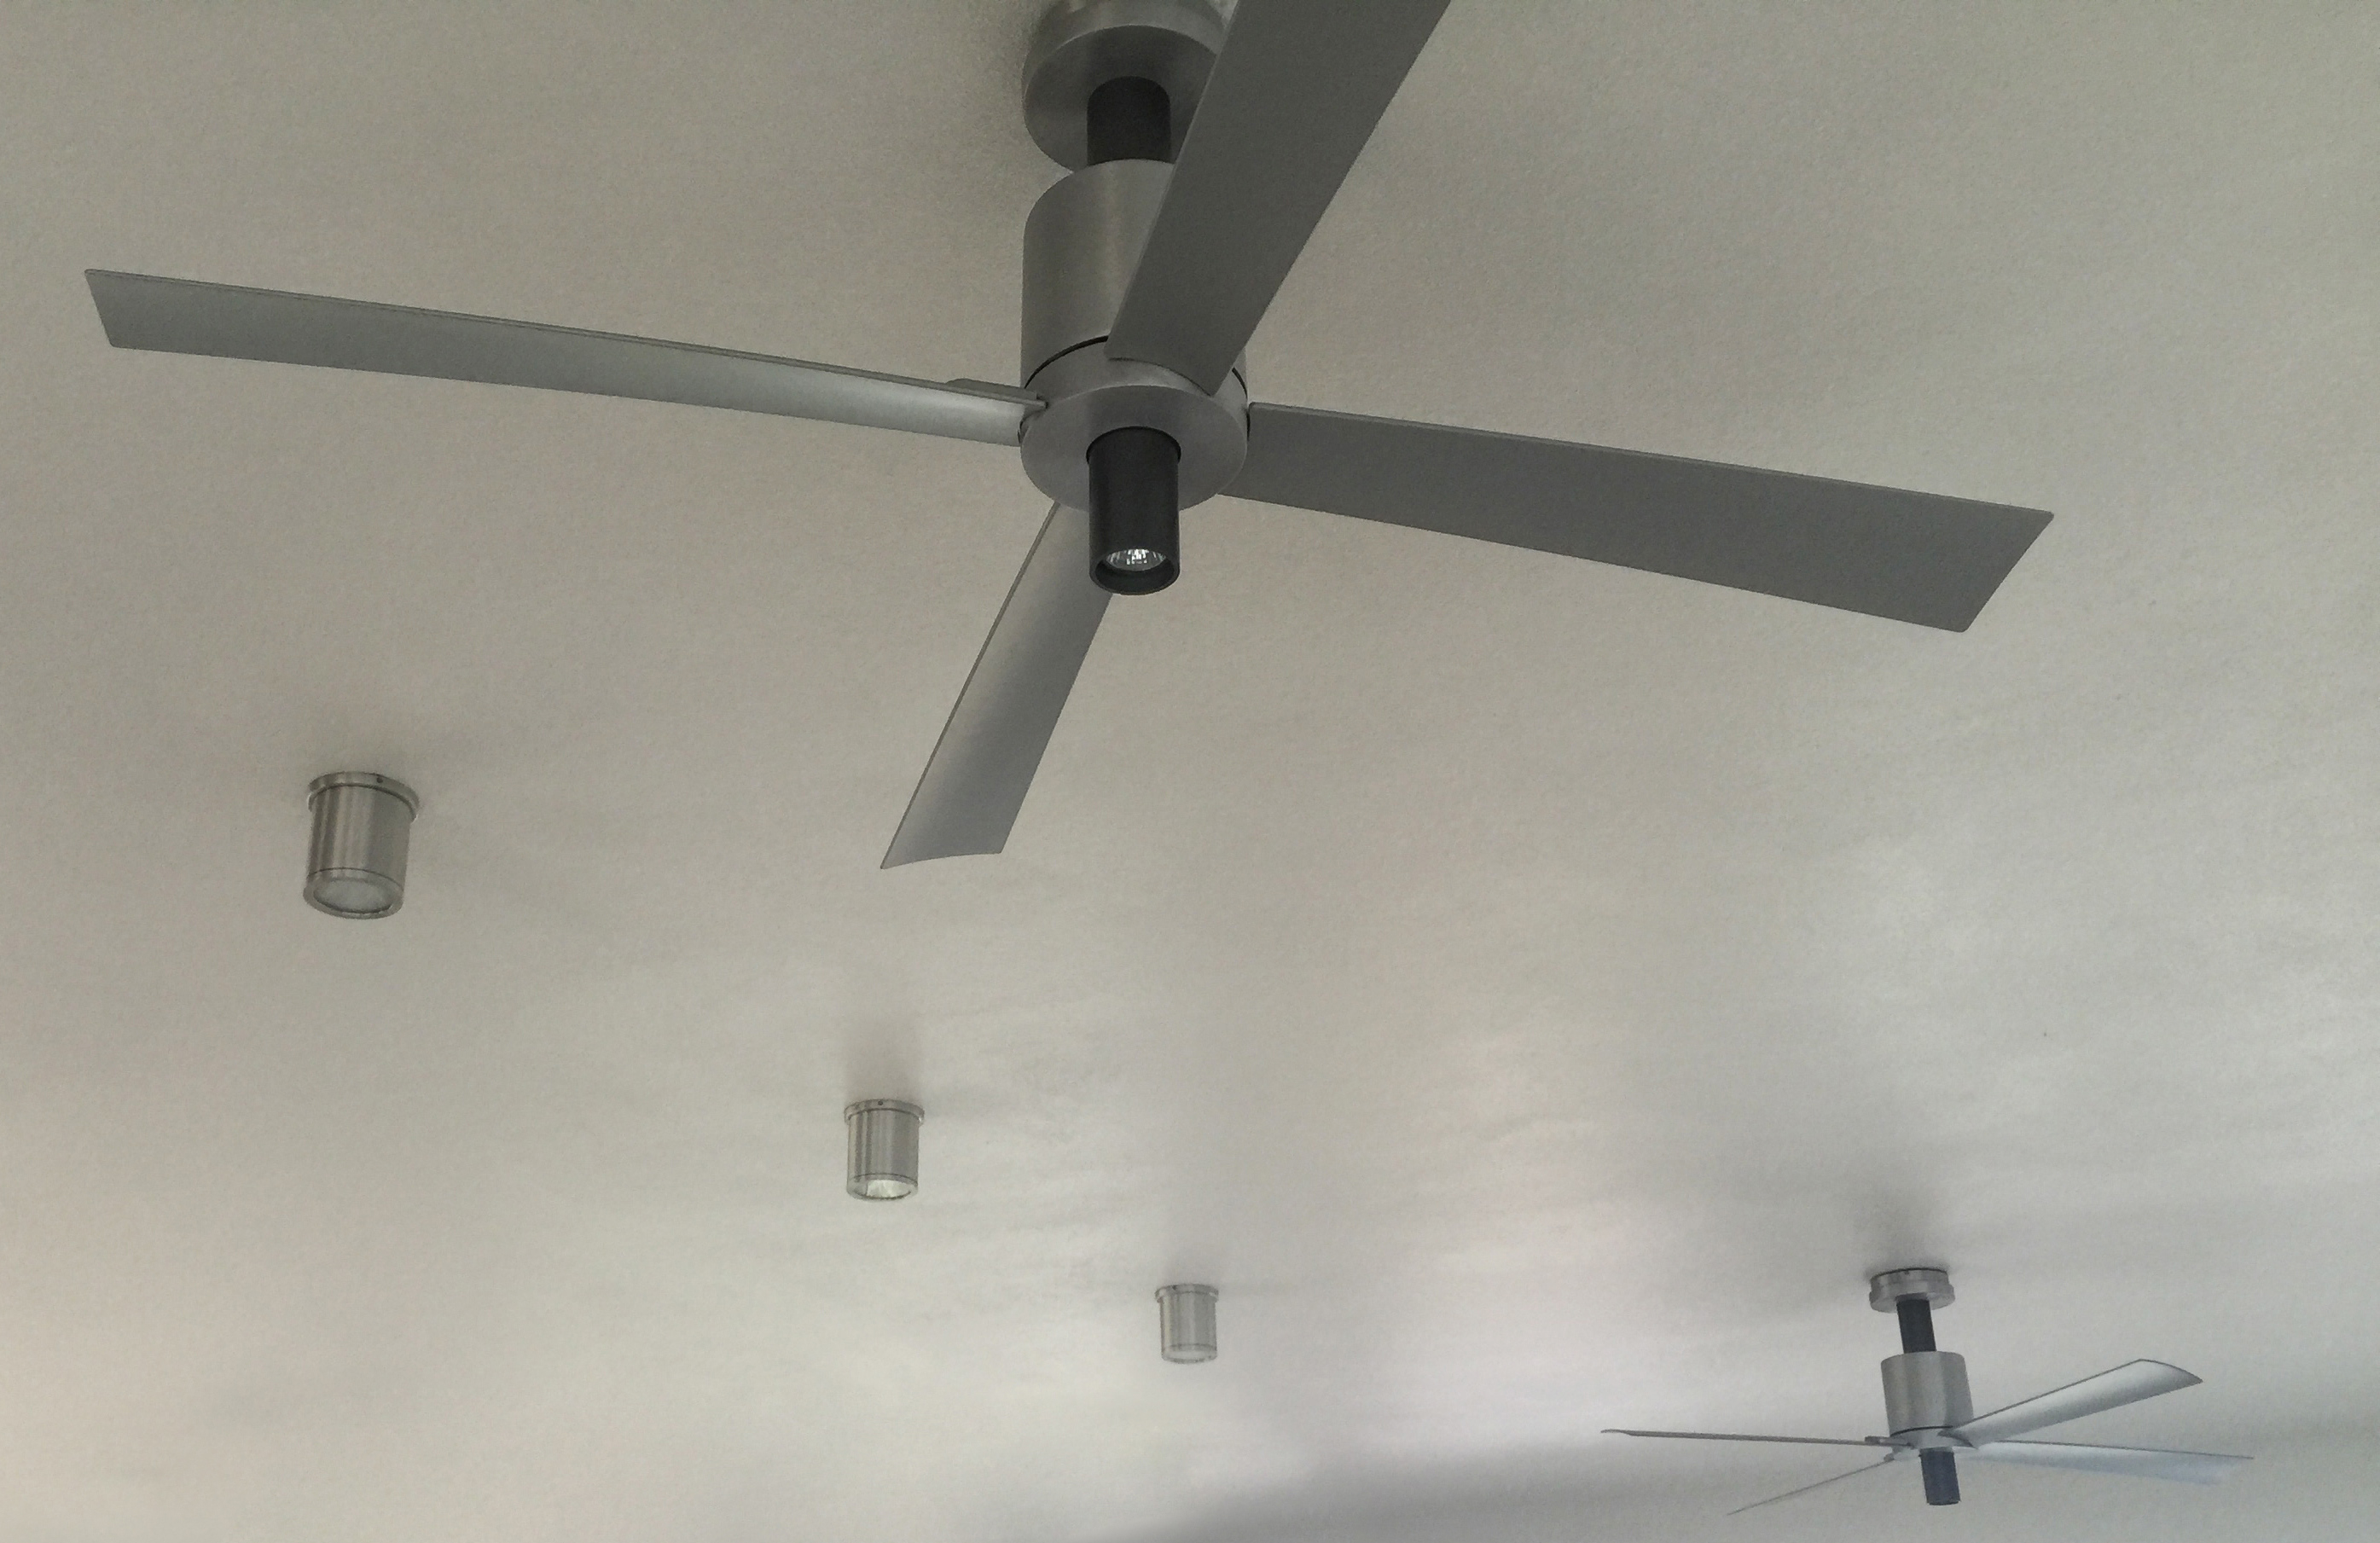 Aris goorji ala lighting specialistbrcommercial sales division pensi fan with light mozeypictures Gallery